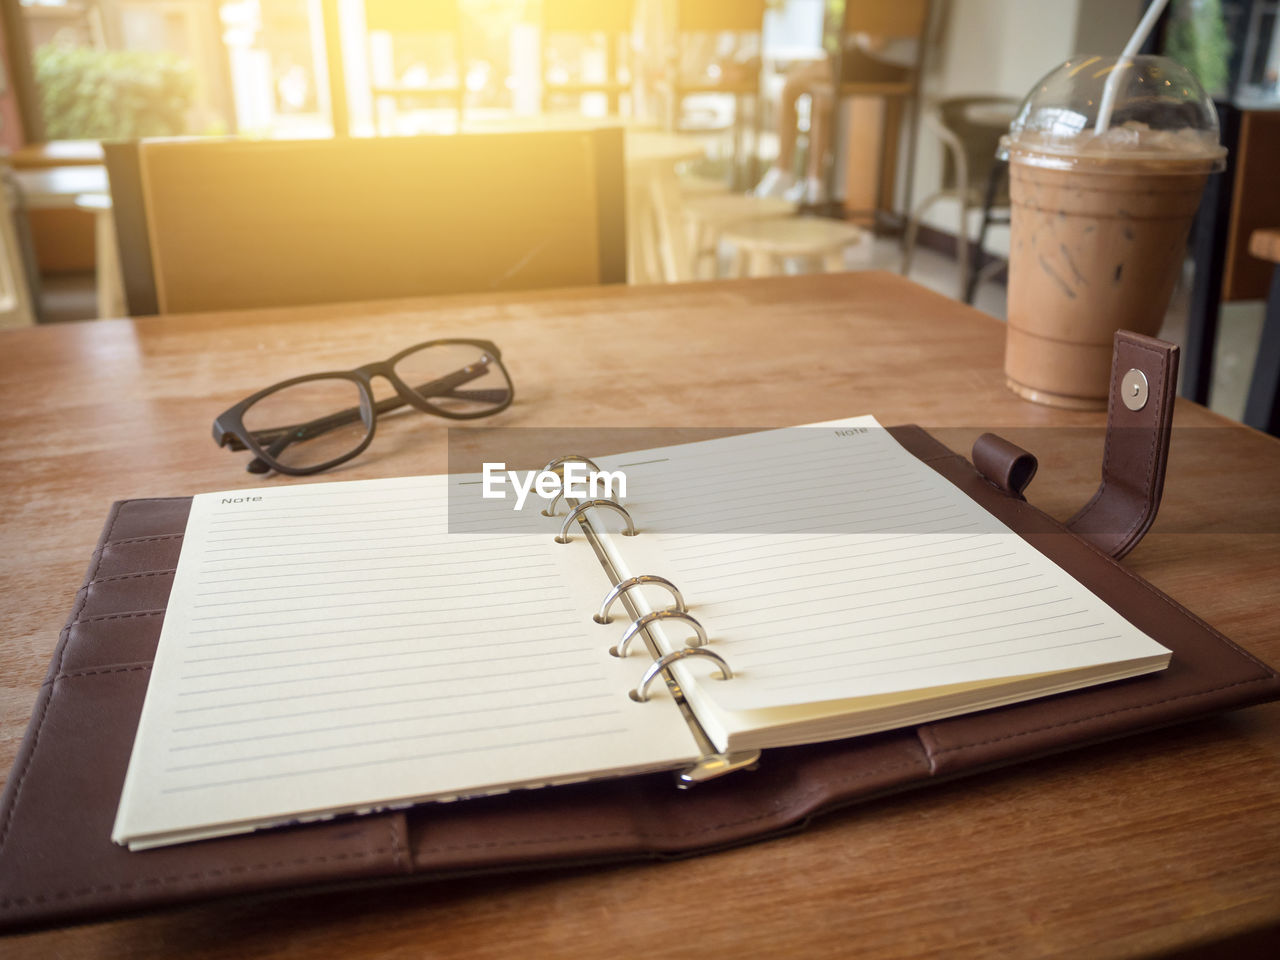 table, paper, pen, drink, book, glass, publication, drinking glass, still life, indoors, no people, note pad, household equipment, refreshment, food and drink, glasses, wood - material, business, eyeglasses, education